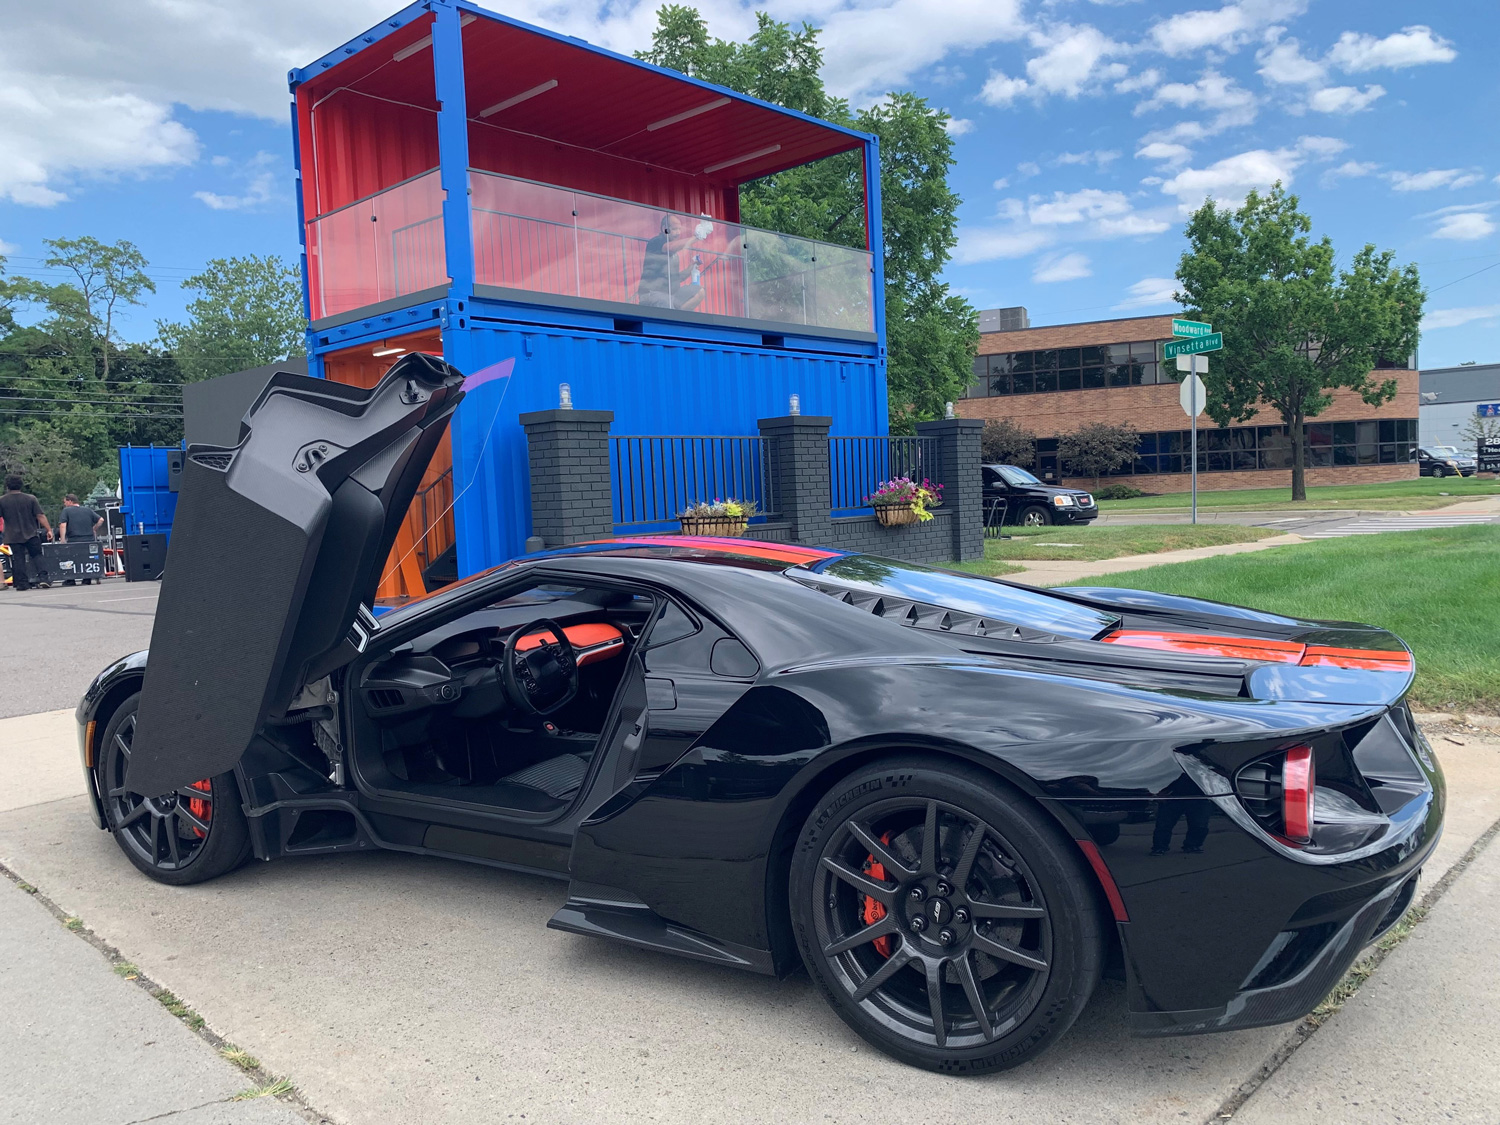 Winning a Woodward drag race in the world's worst Ford GT